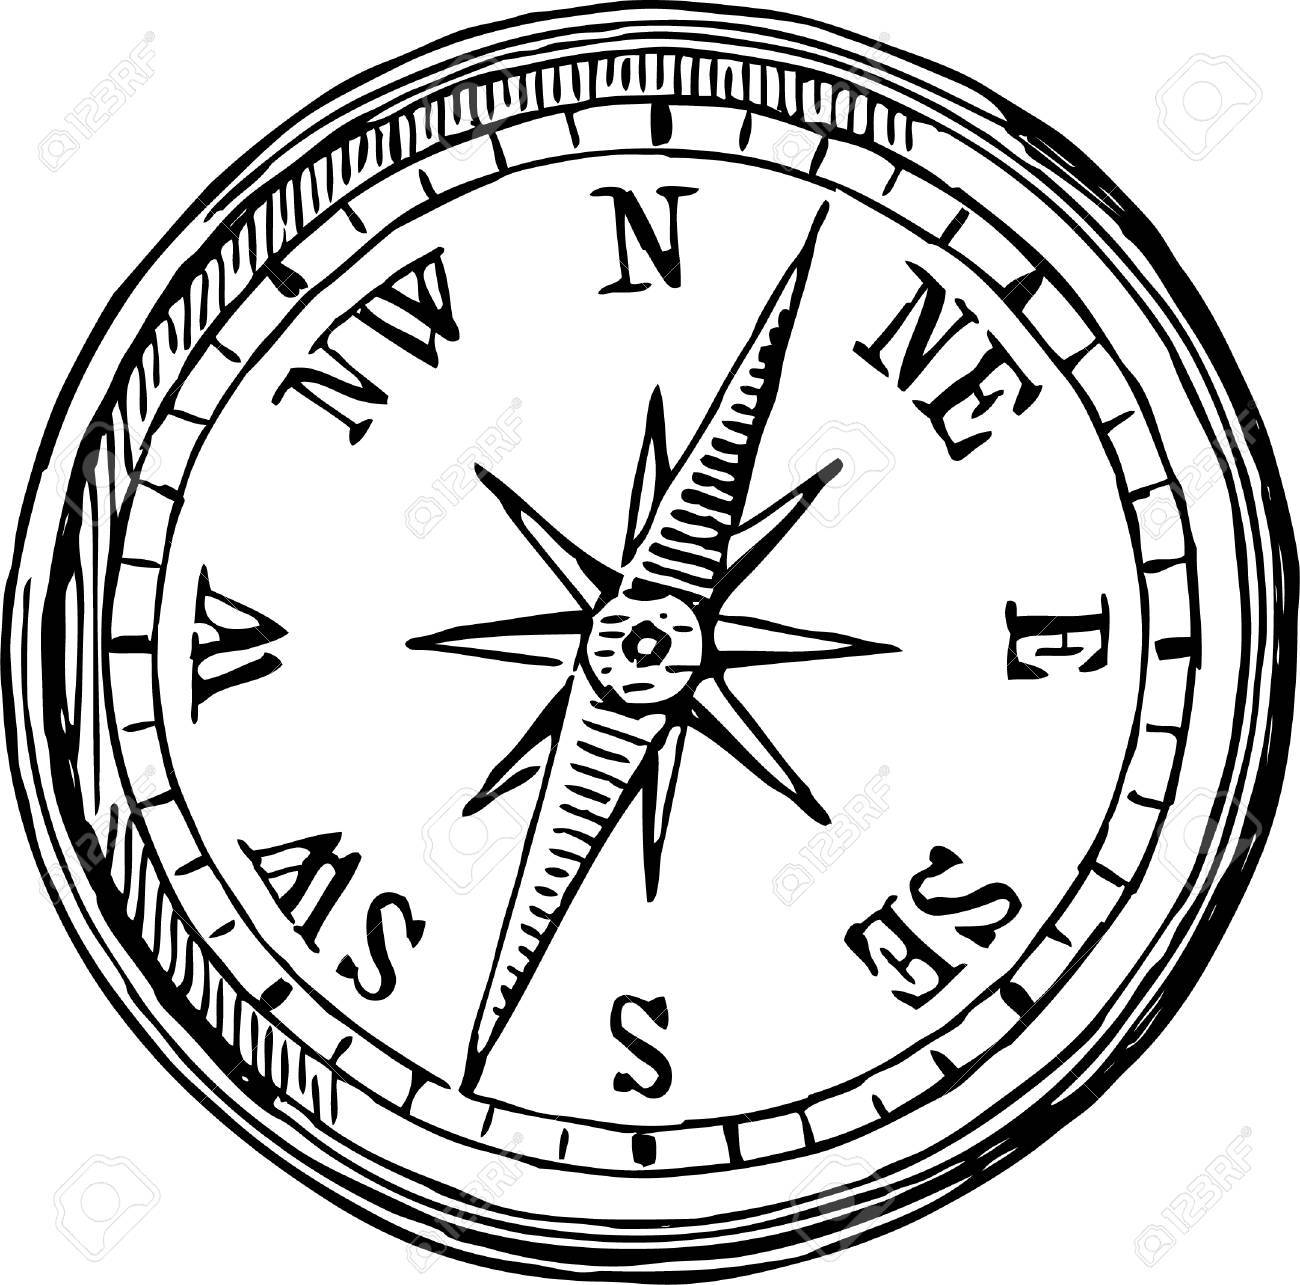 Compass Clock Drawing At Getdrawings Free Download